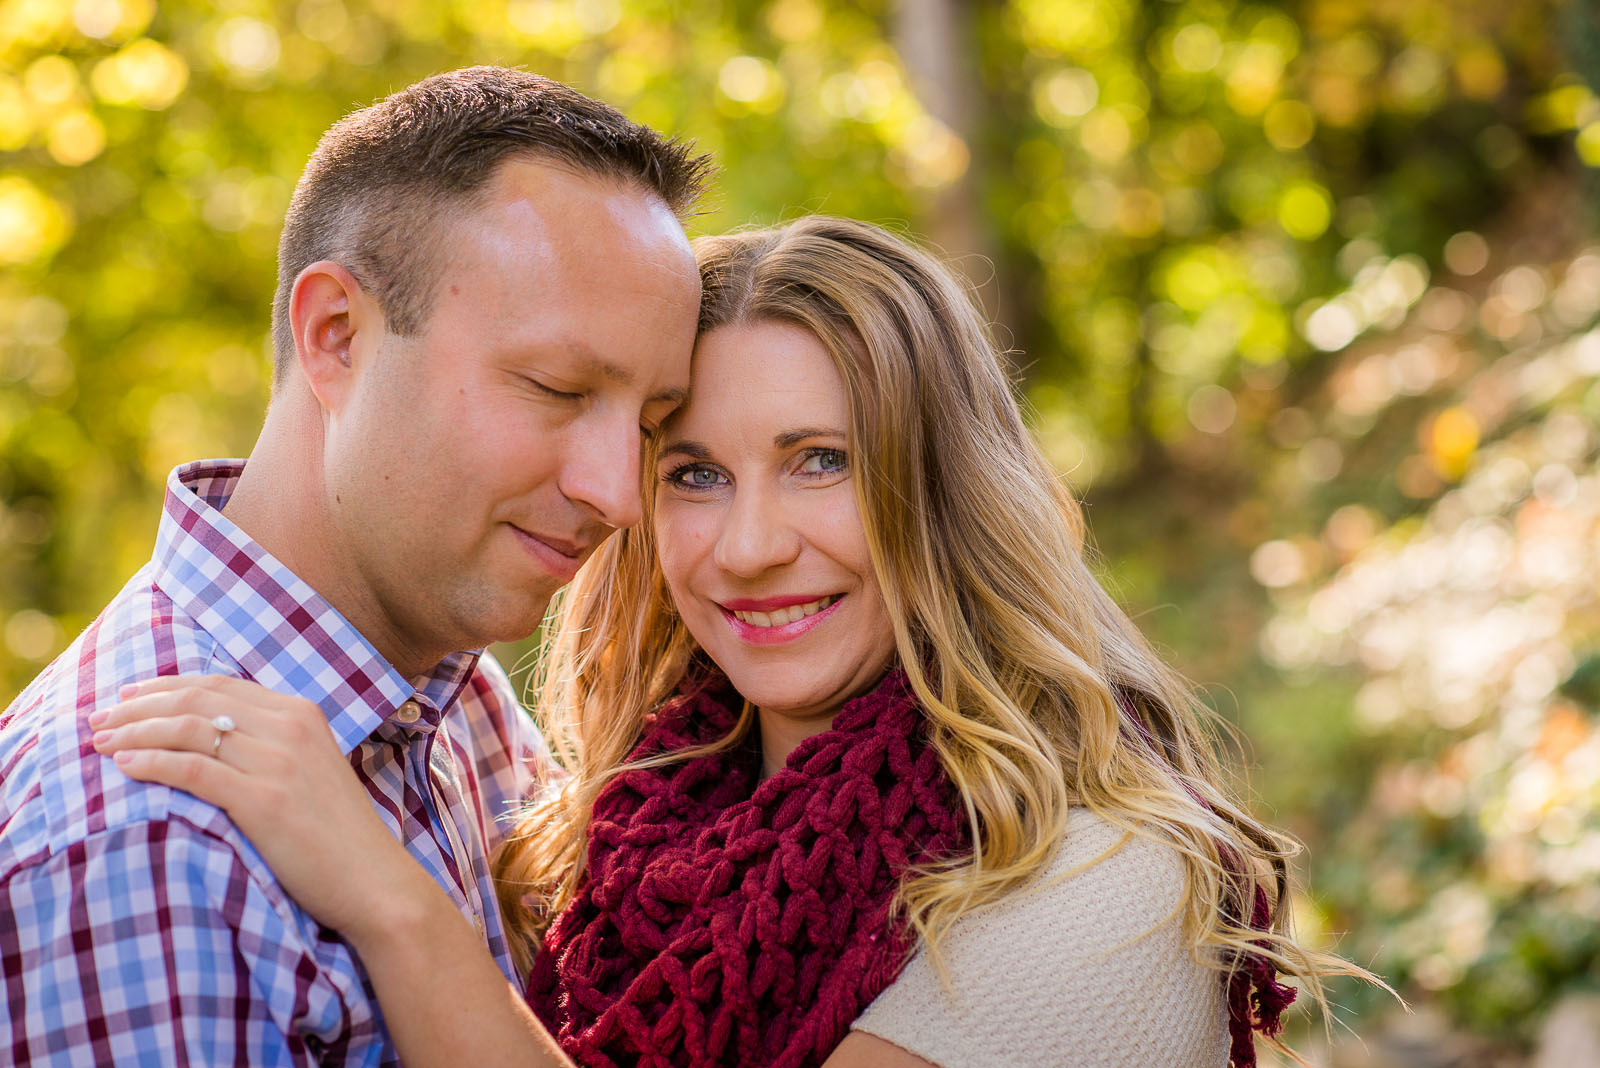 Eric_and_Christy_Photography_Blog_2017_Best_Engagement-7